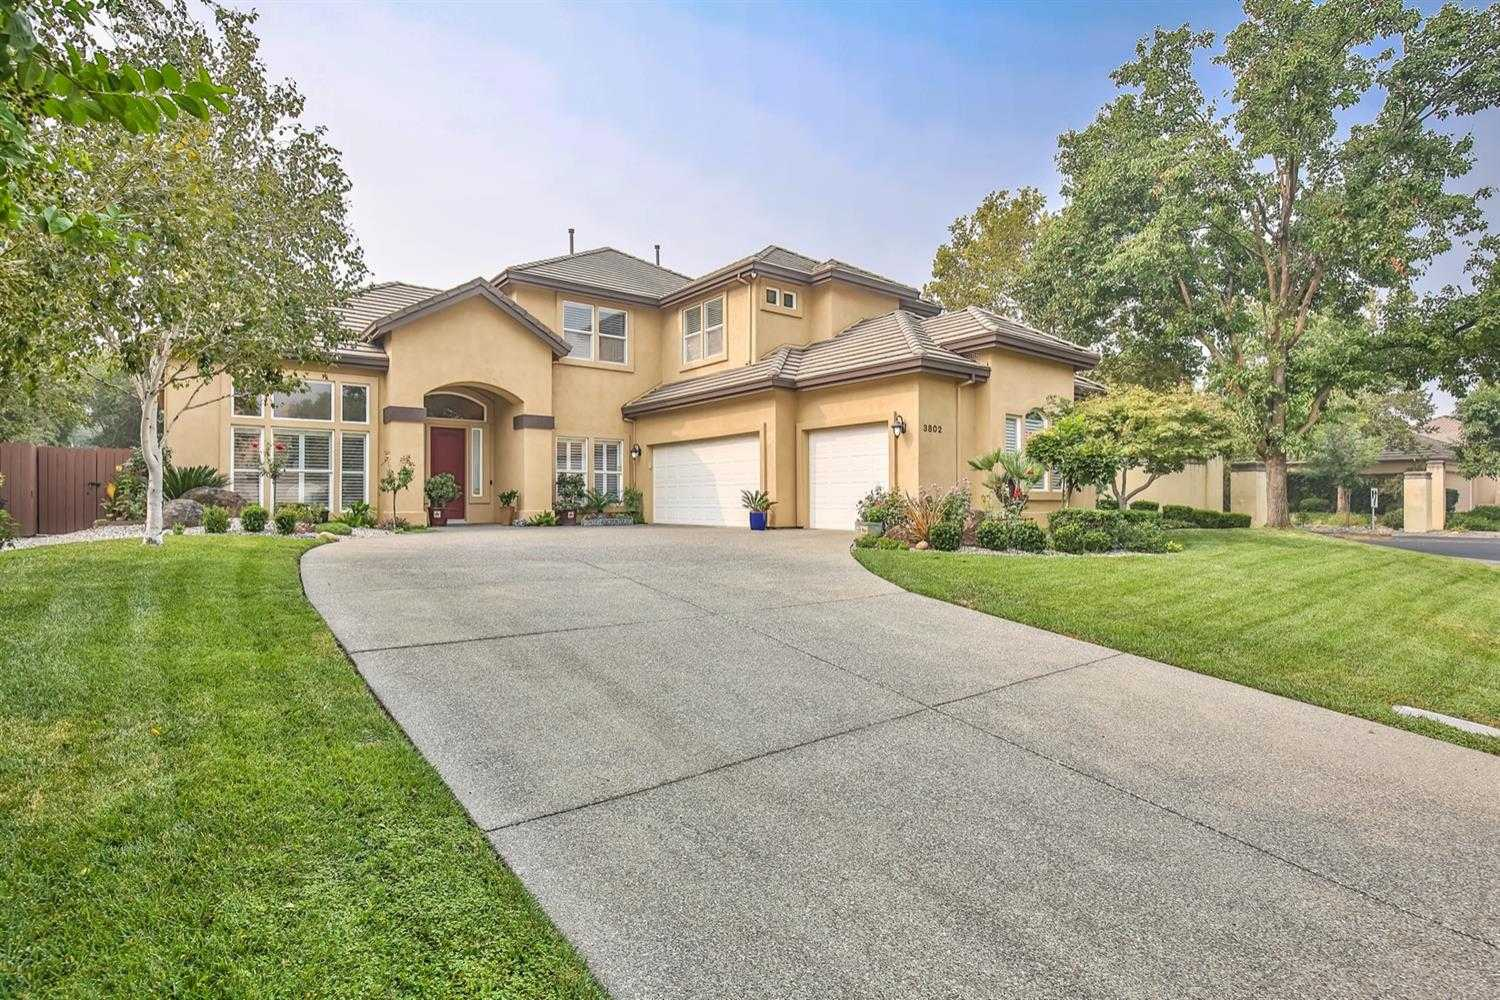 $1,350,000 - 5Br/3Ba -  for Sale in Davis